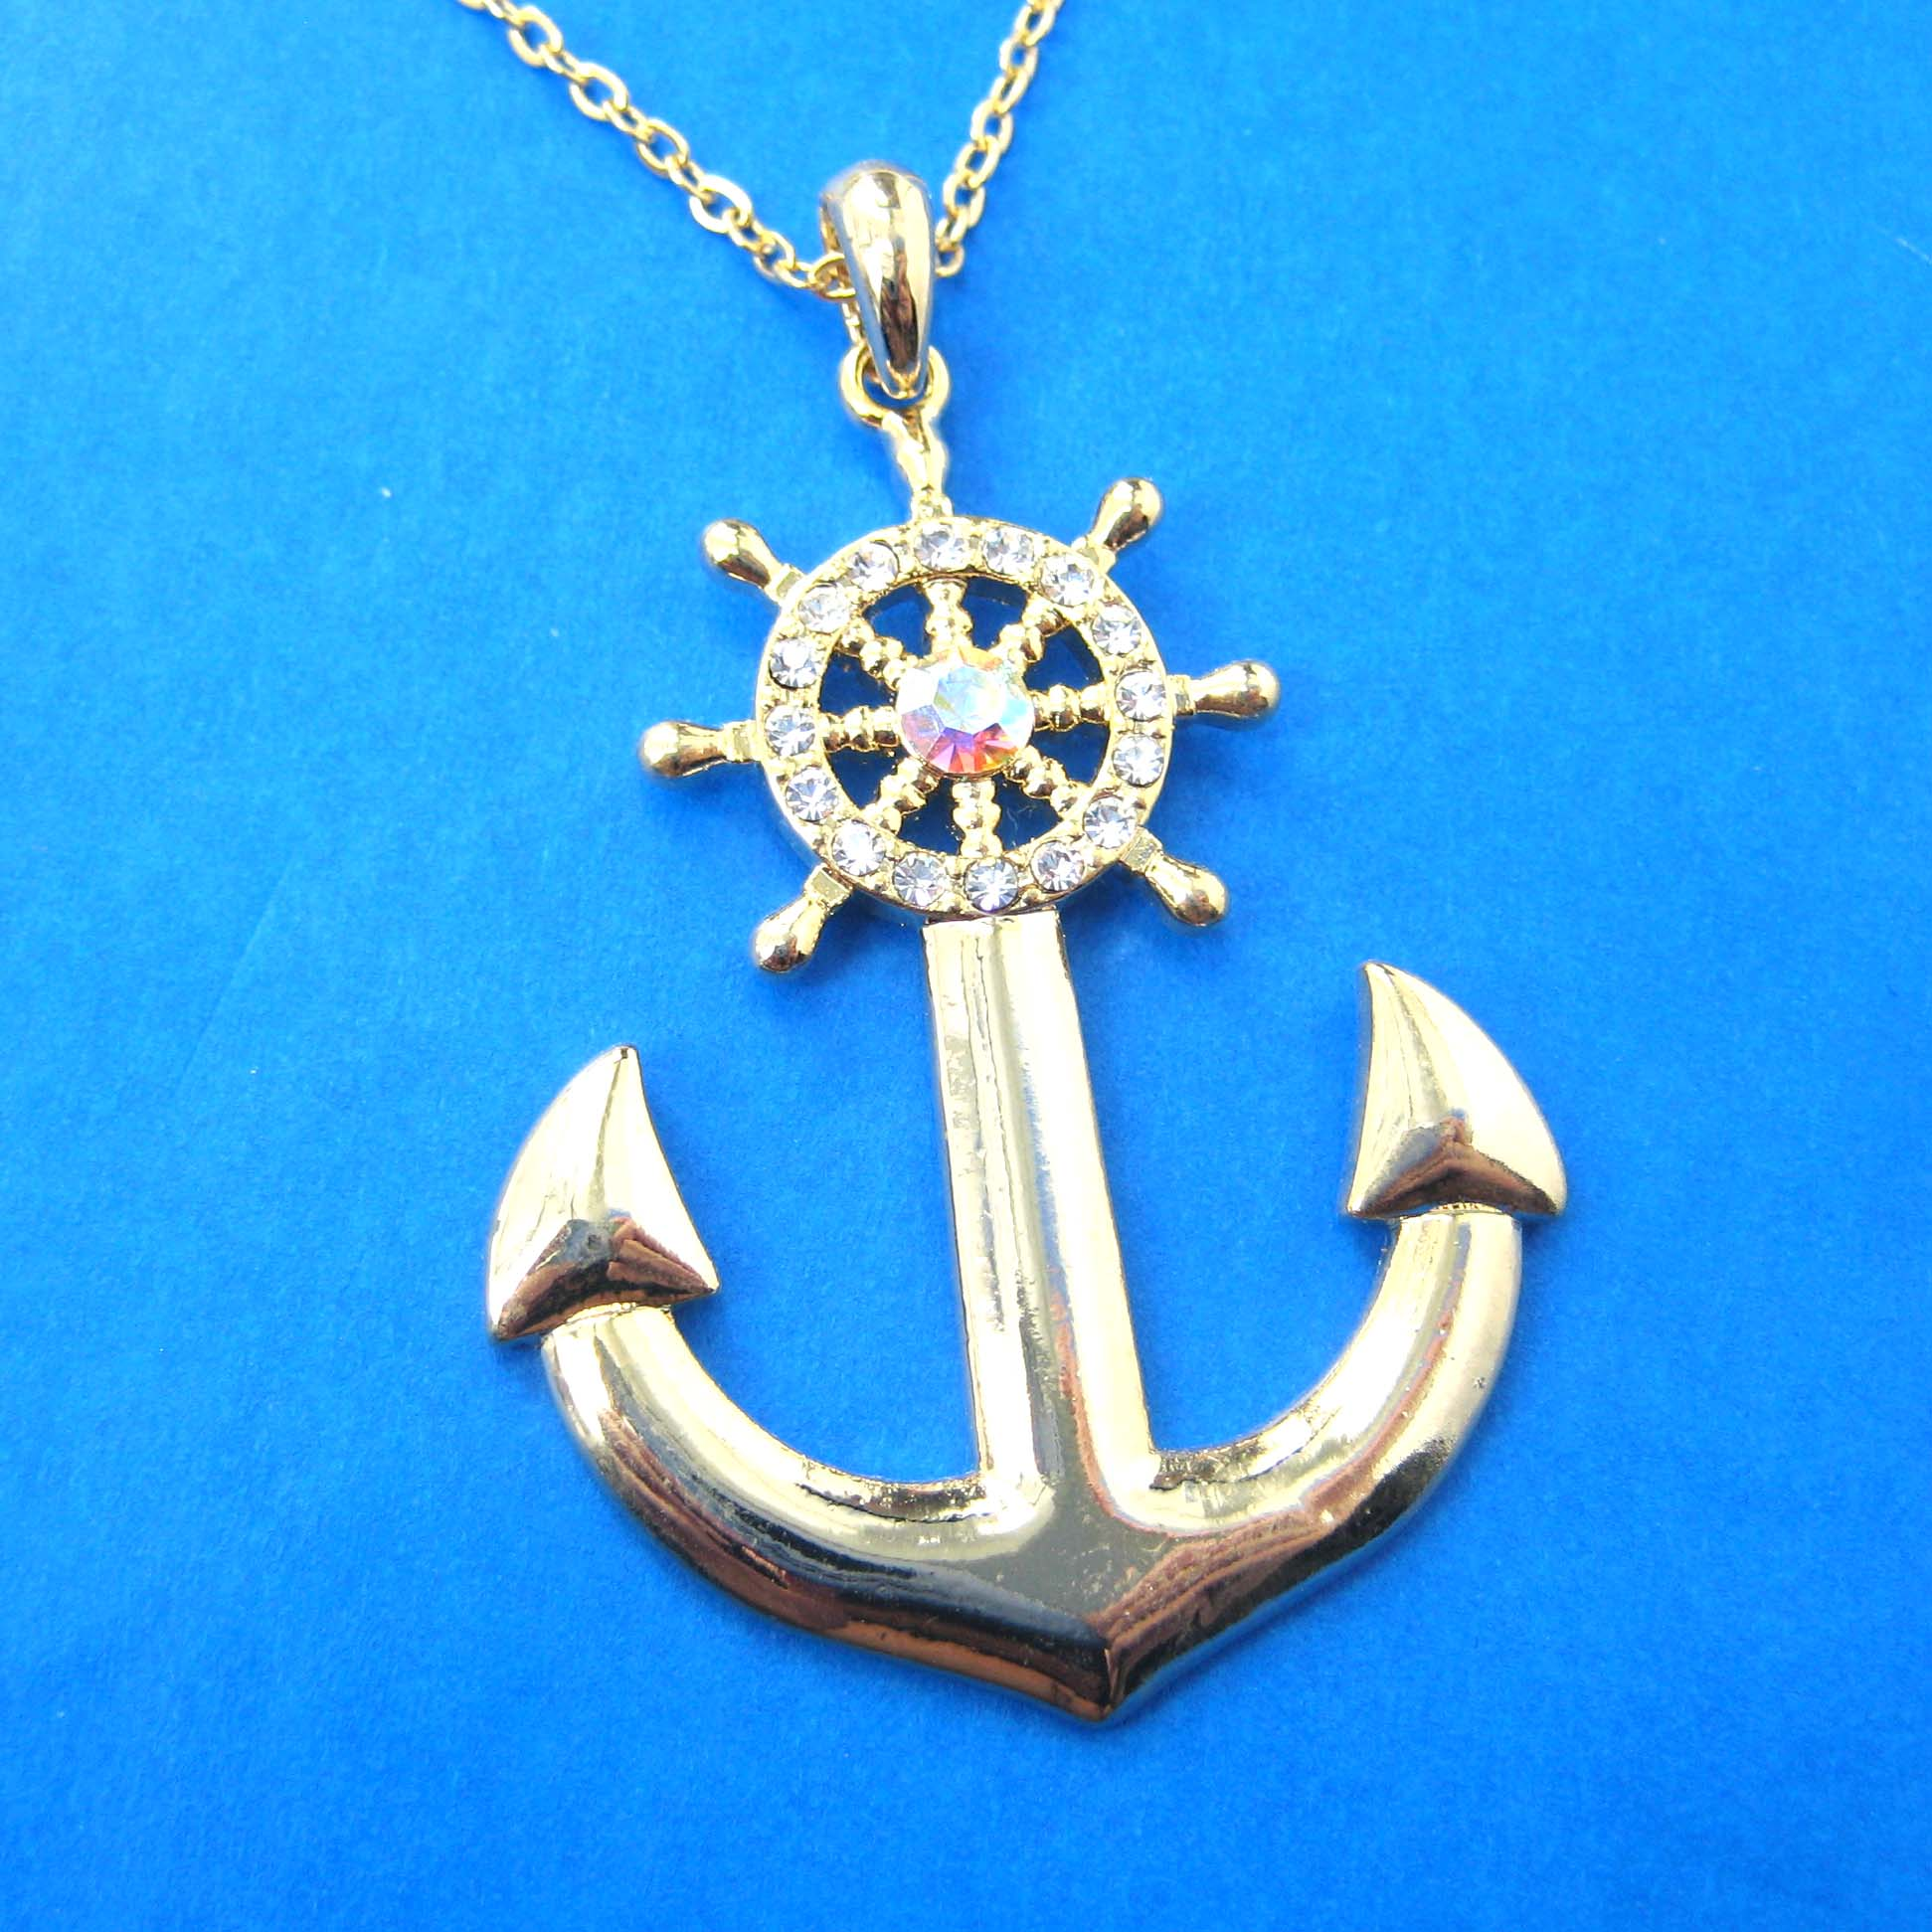 Nautical Anchor and Wheel Pendant Necklace in Gold with Rhinestones